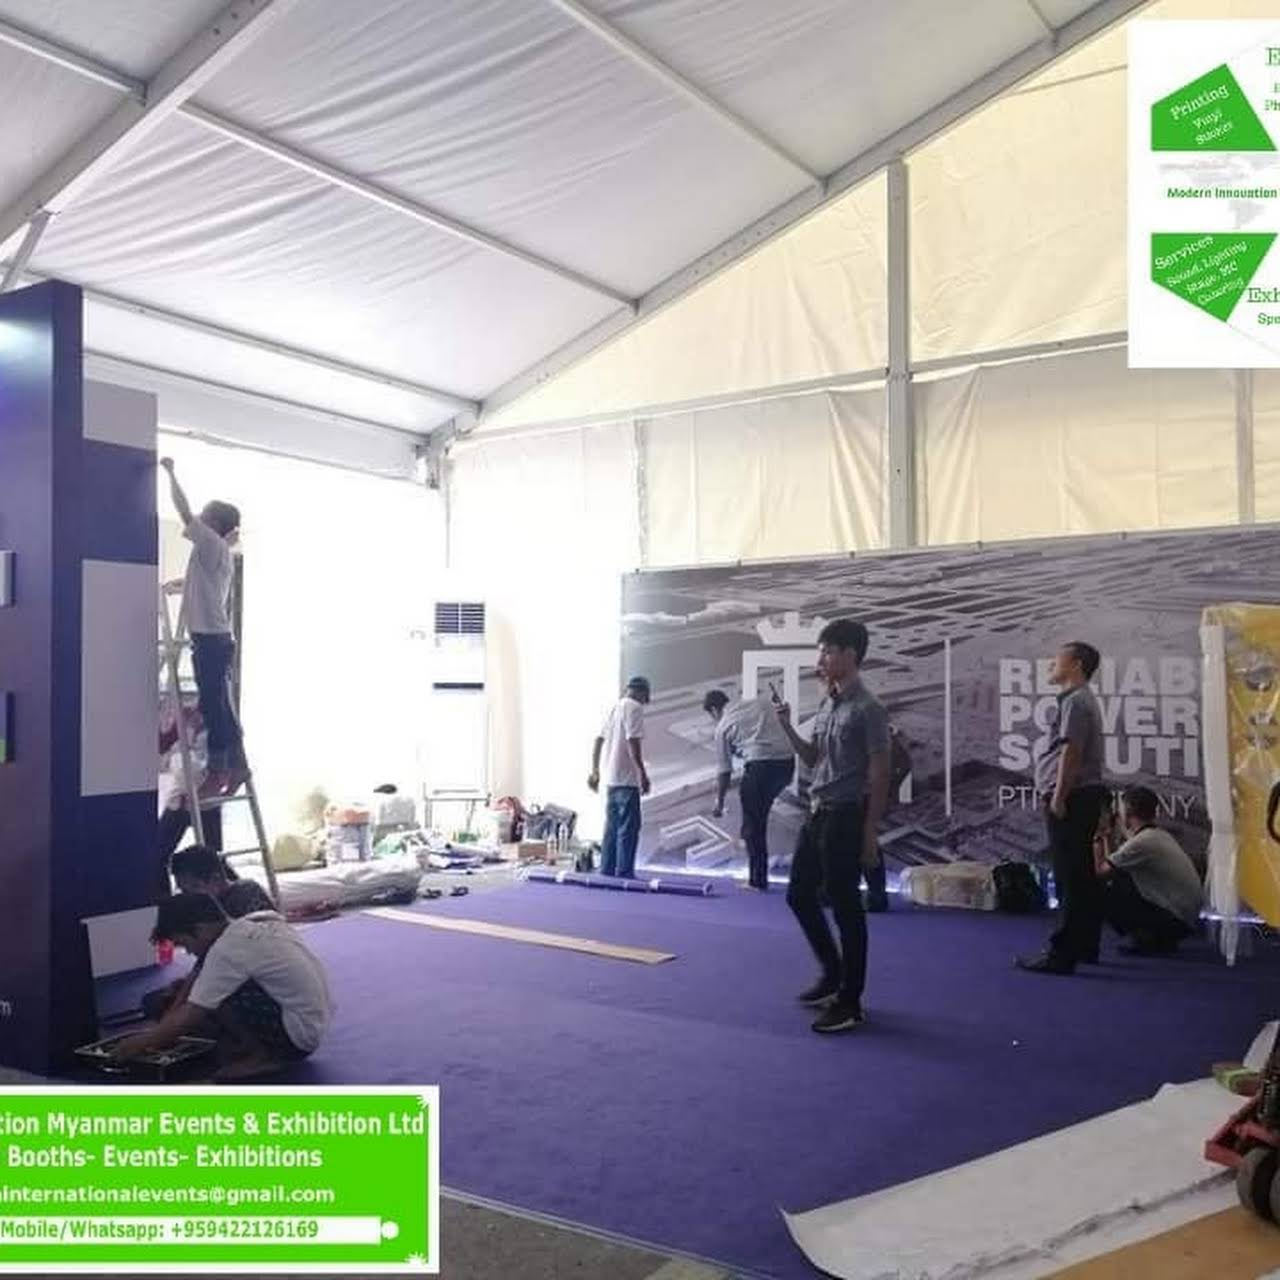 Myanmar Events-Special Booths-Exhibitions Services - Event